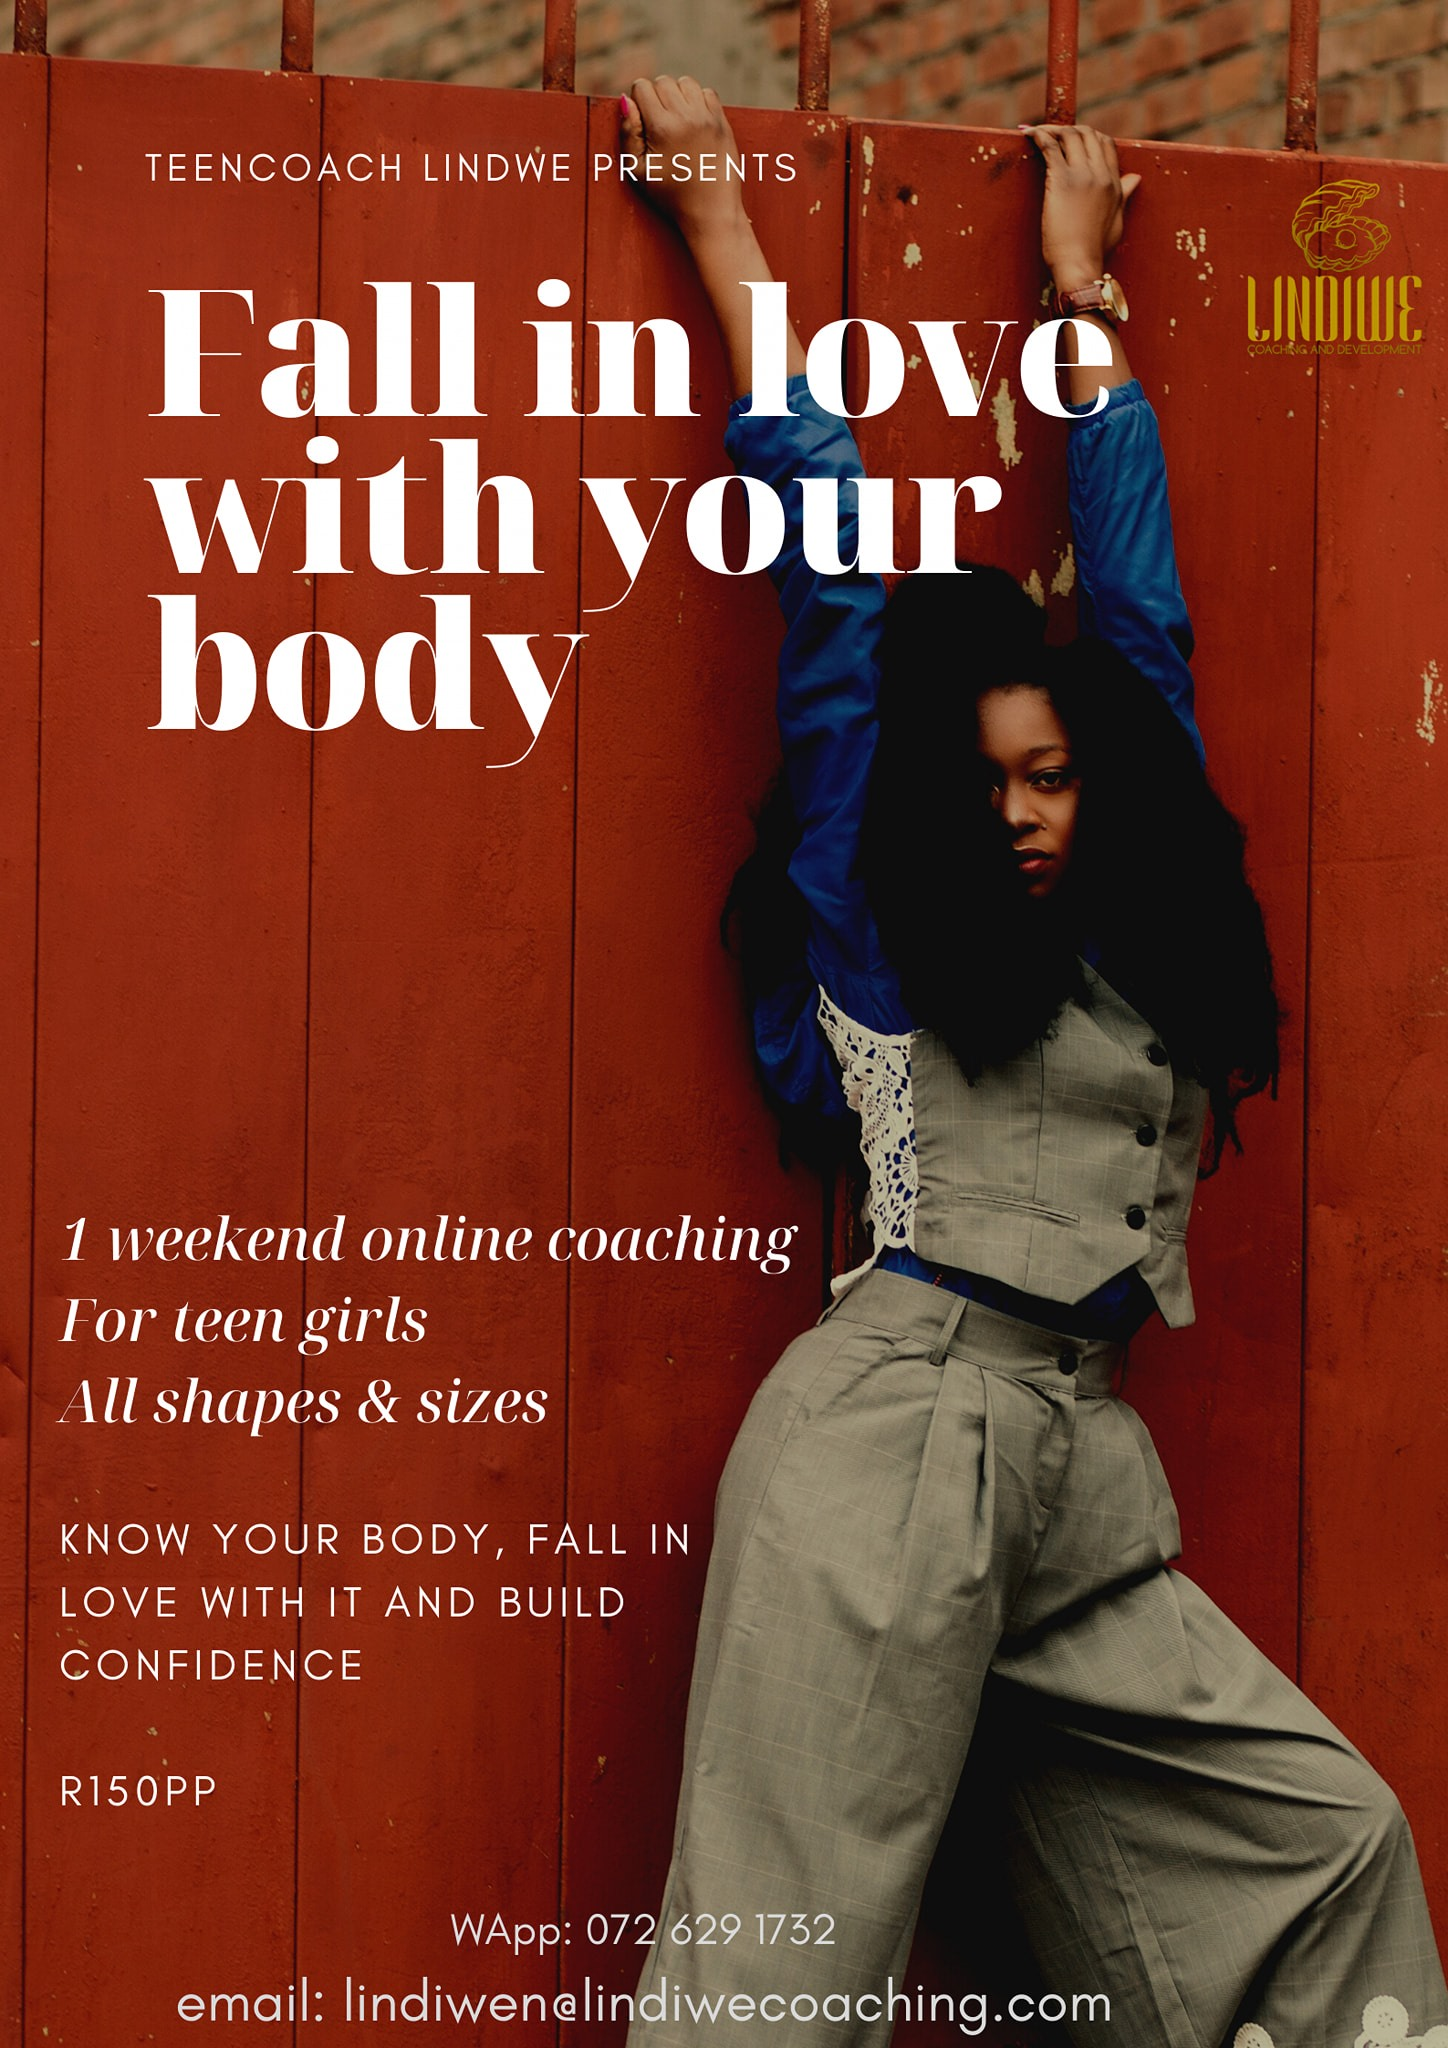 Fall in love with yourself workshop